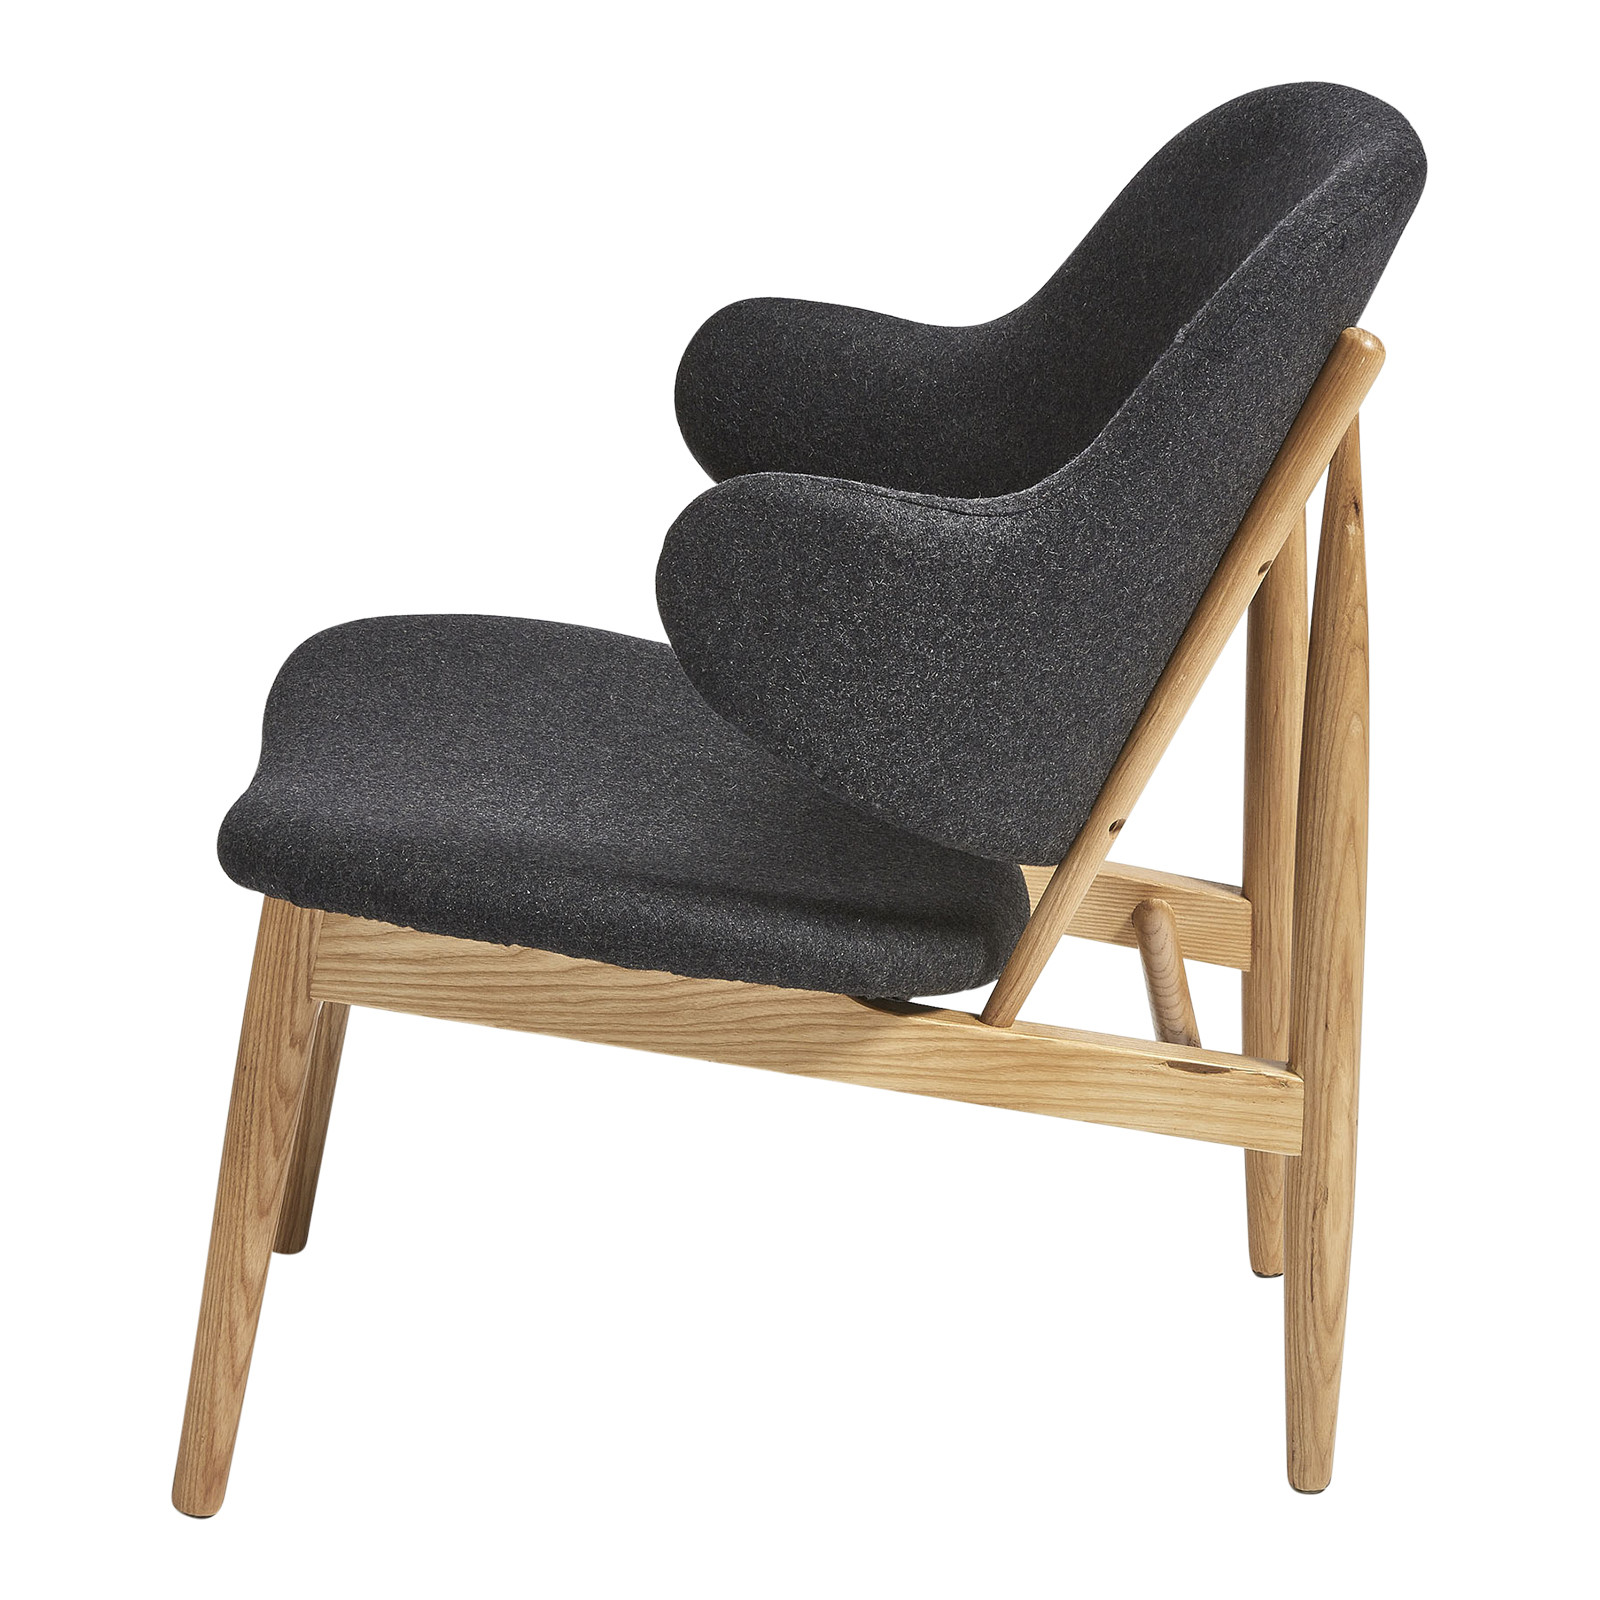 New Milan Direct Ib Kofod Larsen Replica Easy Lounge Chair Ebay # Easylounge Meuble Tv